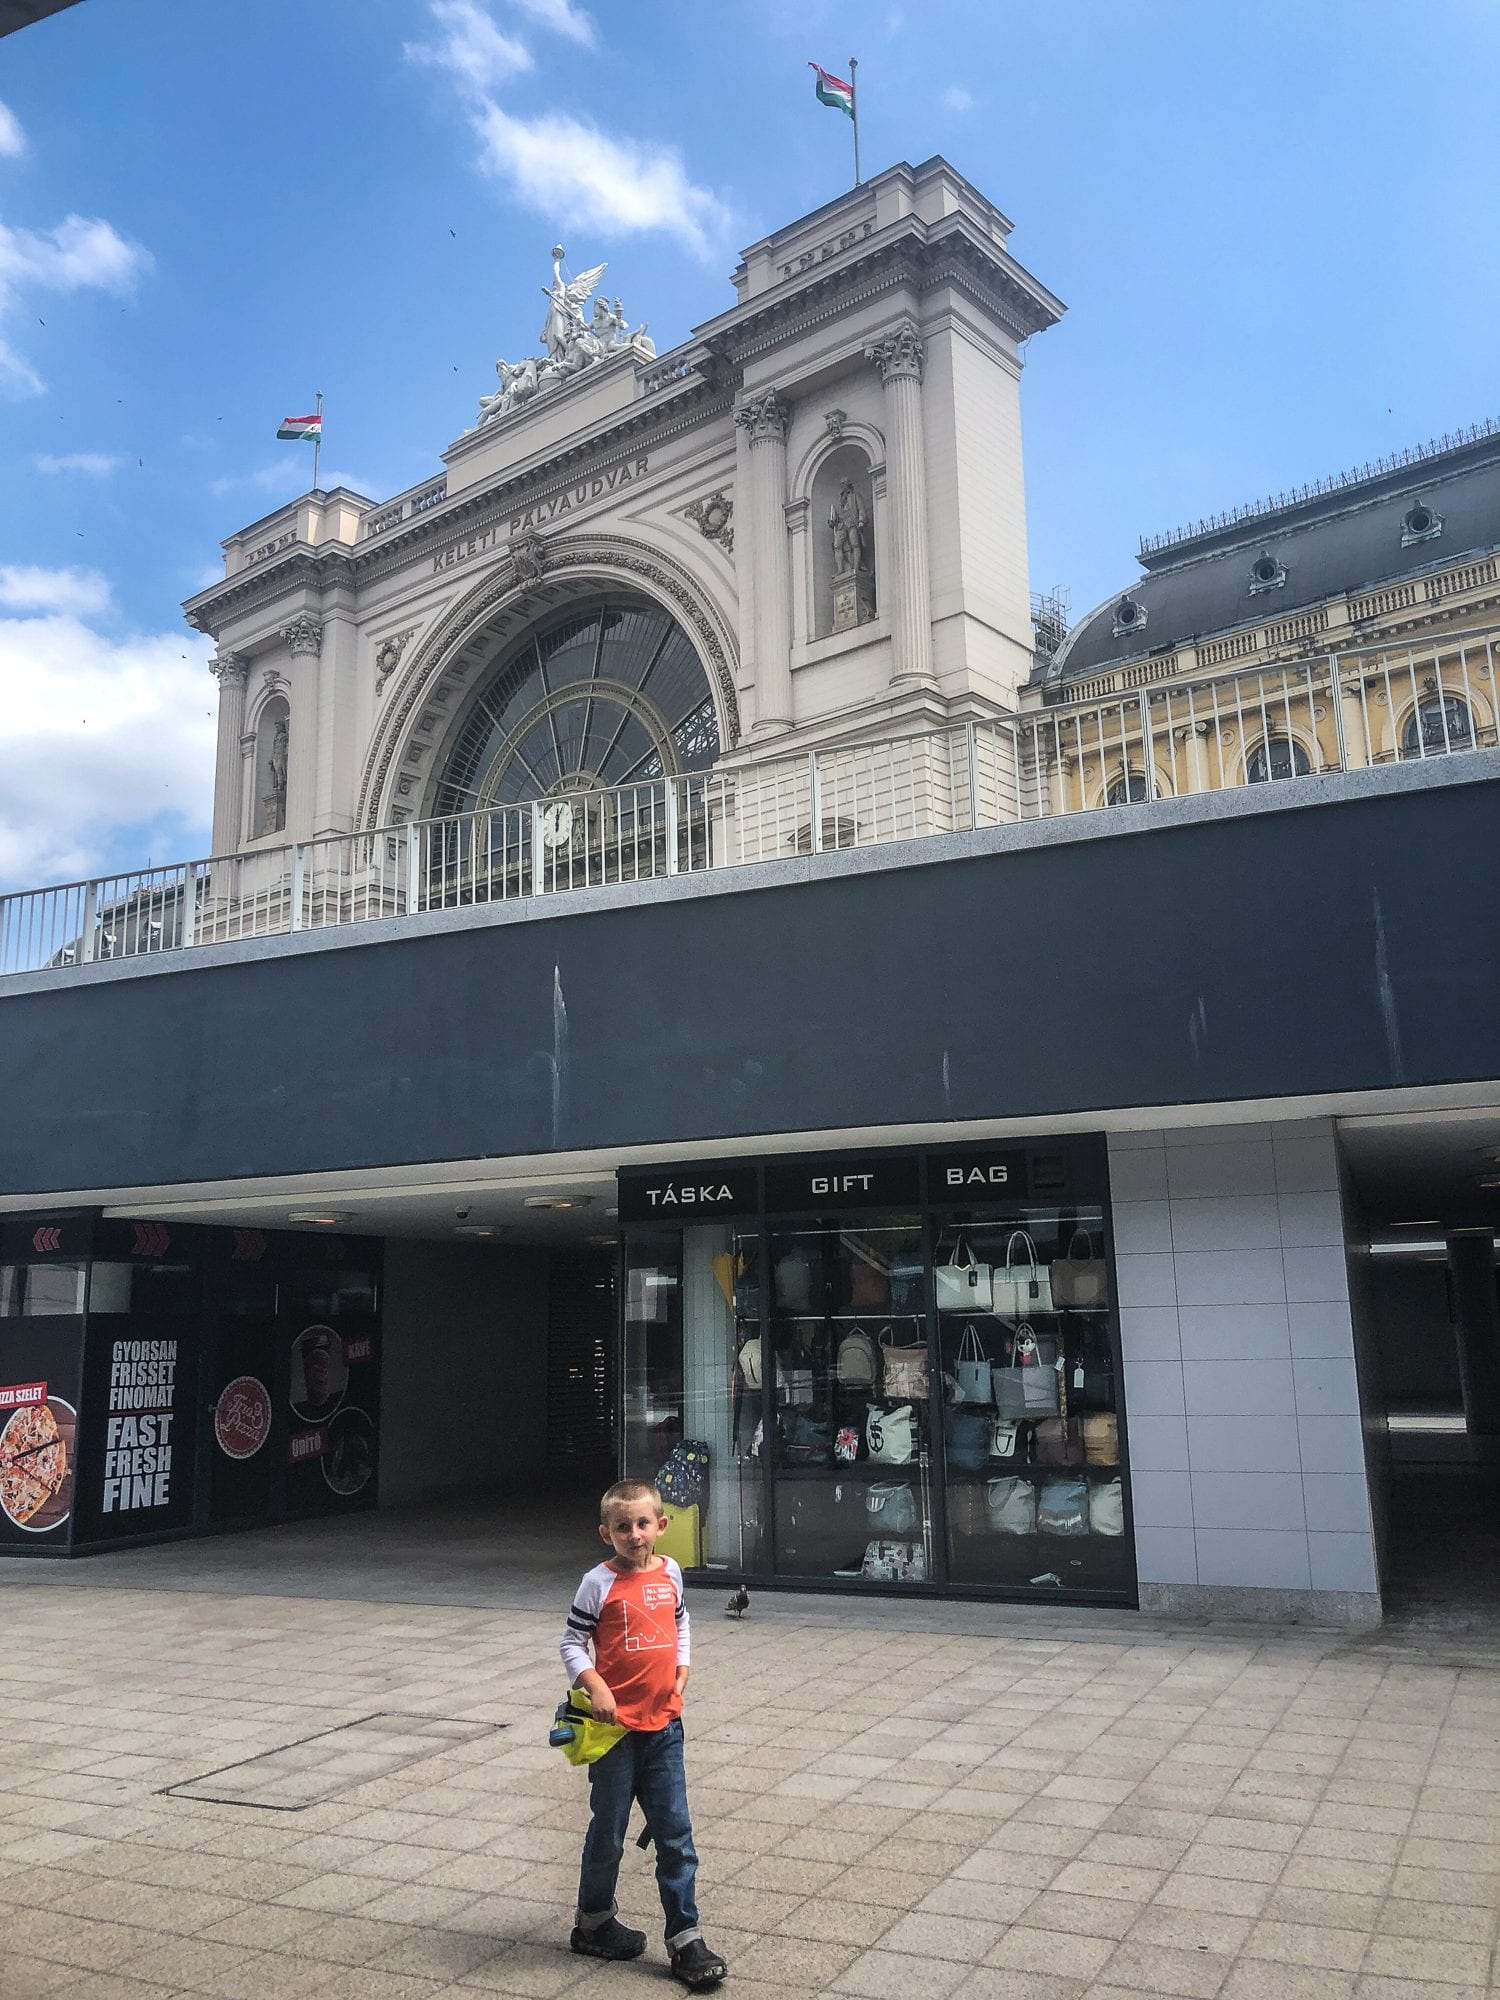 invisible disability in budapest: a boy with an orange shirt in front of the train station